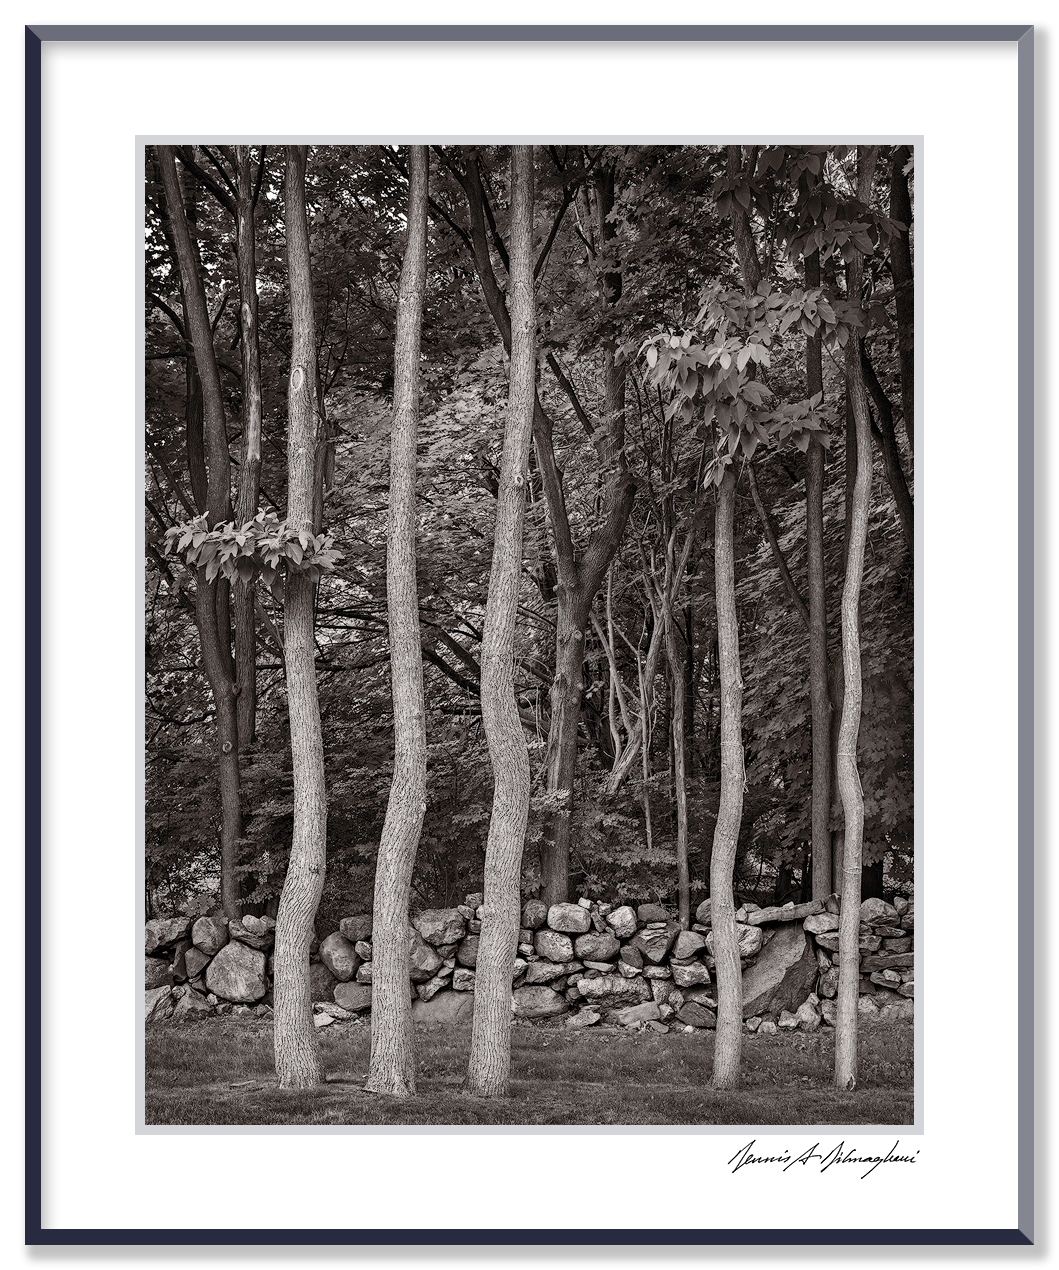 Dancing Trees - SUNY Campus, Purchase, NY